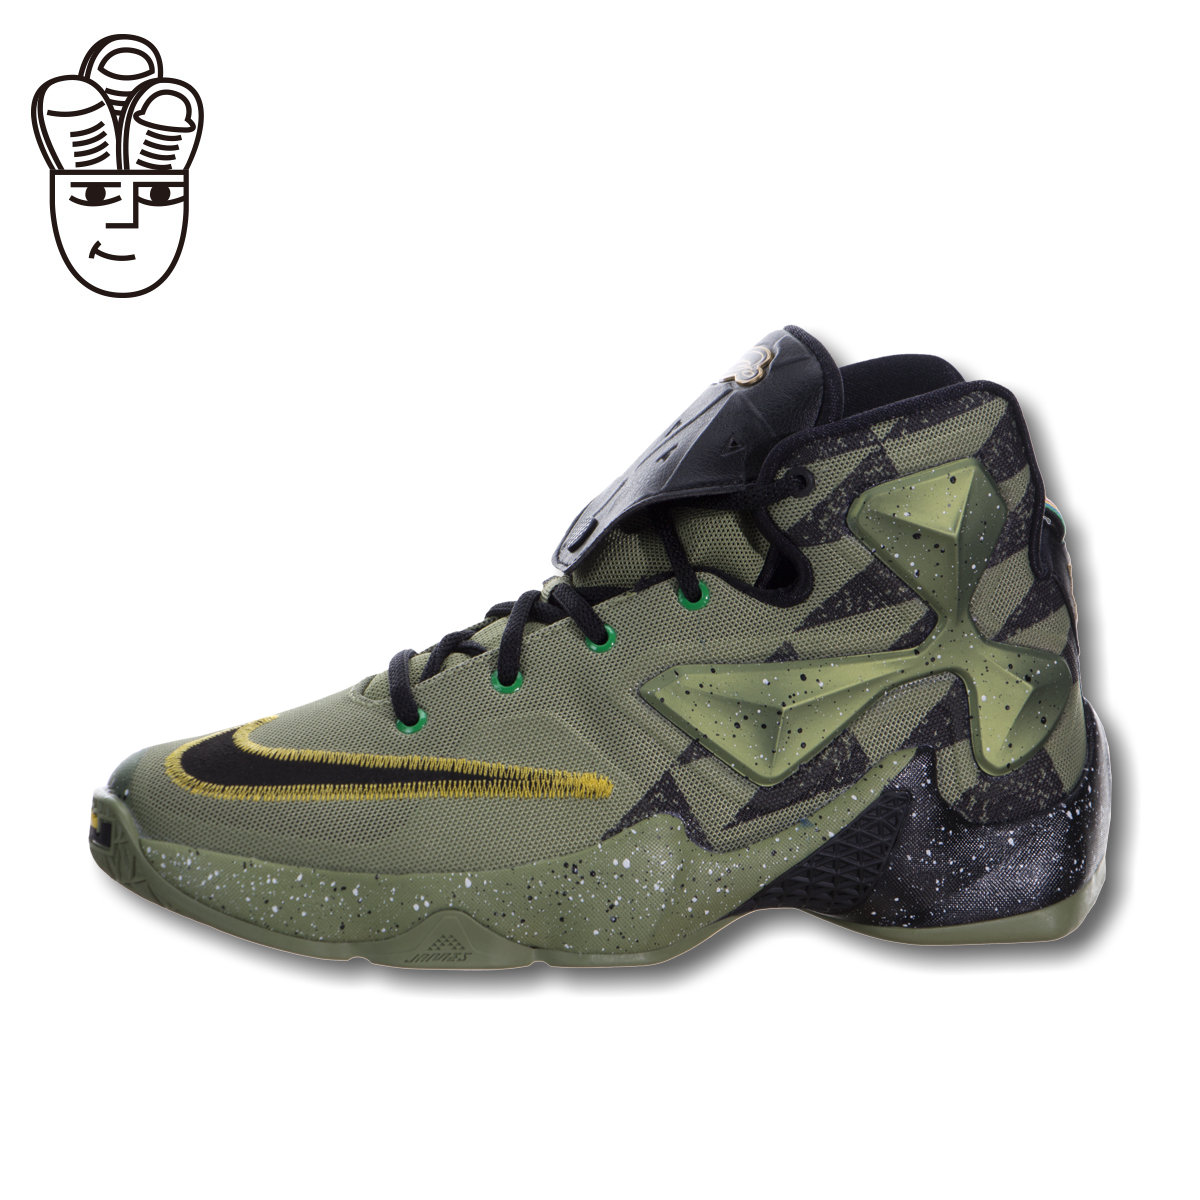 262d1b08fd91 Get Quotations · Decisionxiii as nike lebron nike lebron james 13  generations of basketball shoes all star men s